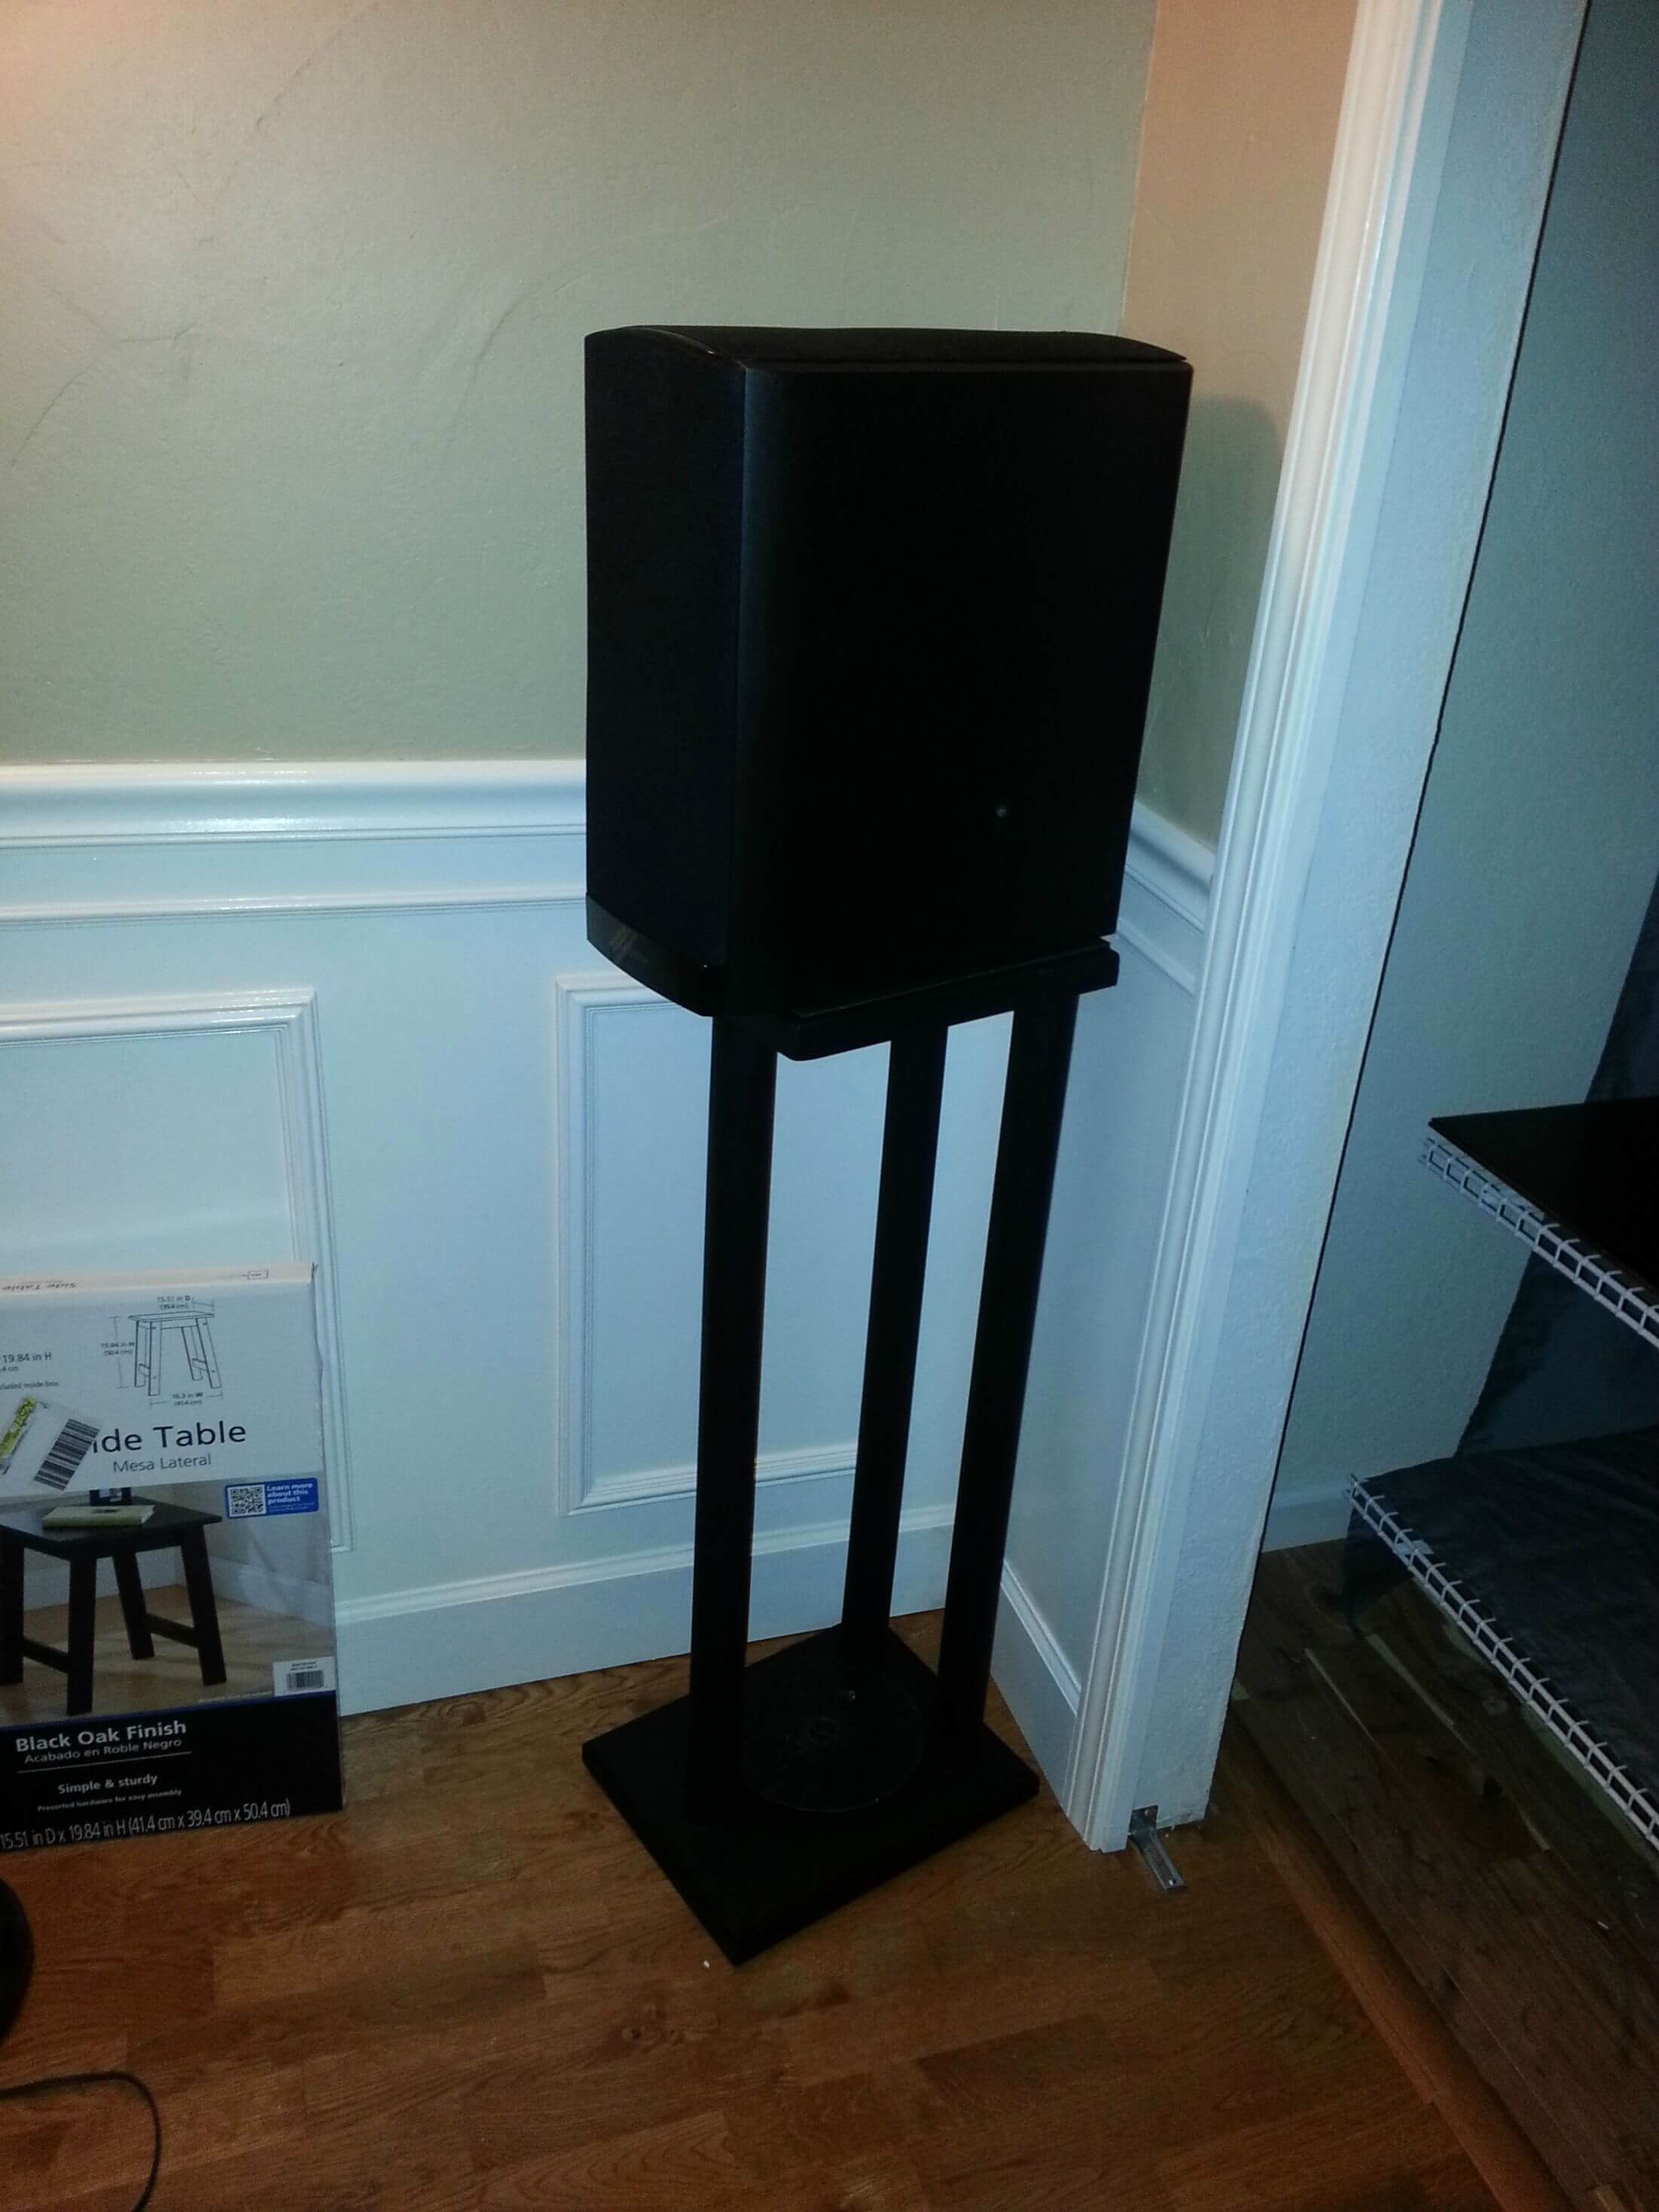 Best ideas about DIY Speaker Stands . Save or Pin 13 DIY Speaker Stands Ideas to Produce More Qualified Voice Now.